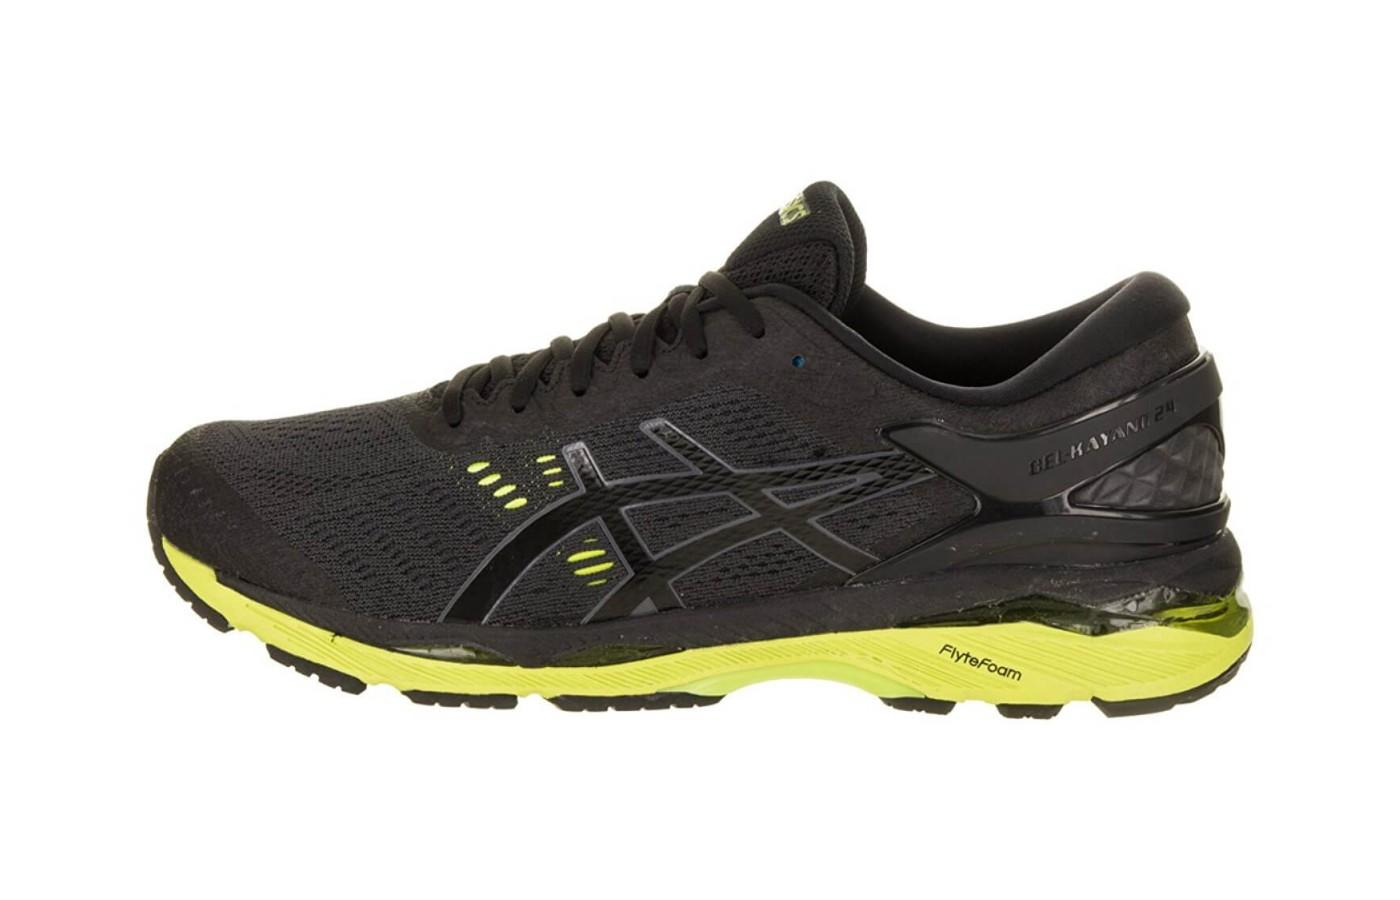 here's a profile of the Asics Gel Kayano 24